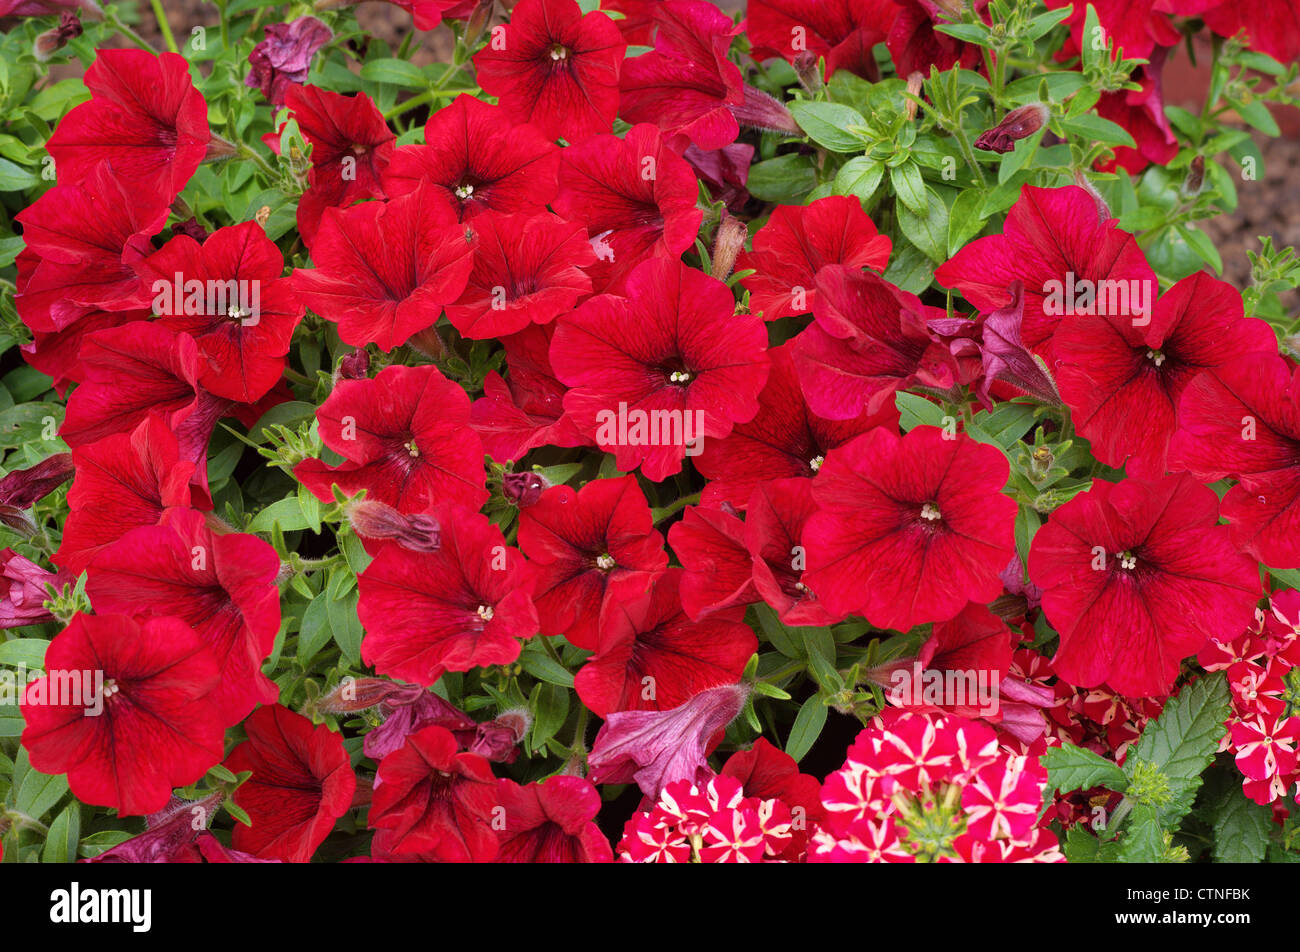 Red petunia flowers close up - Stock Image